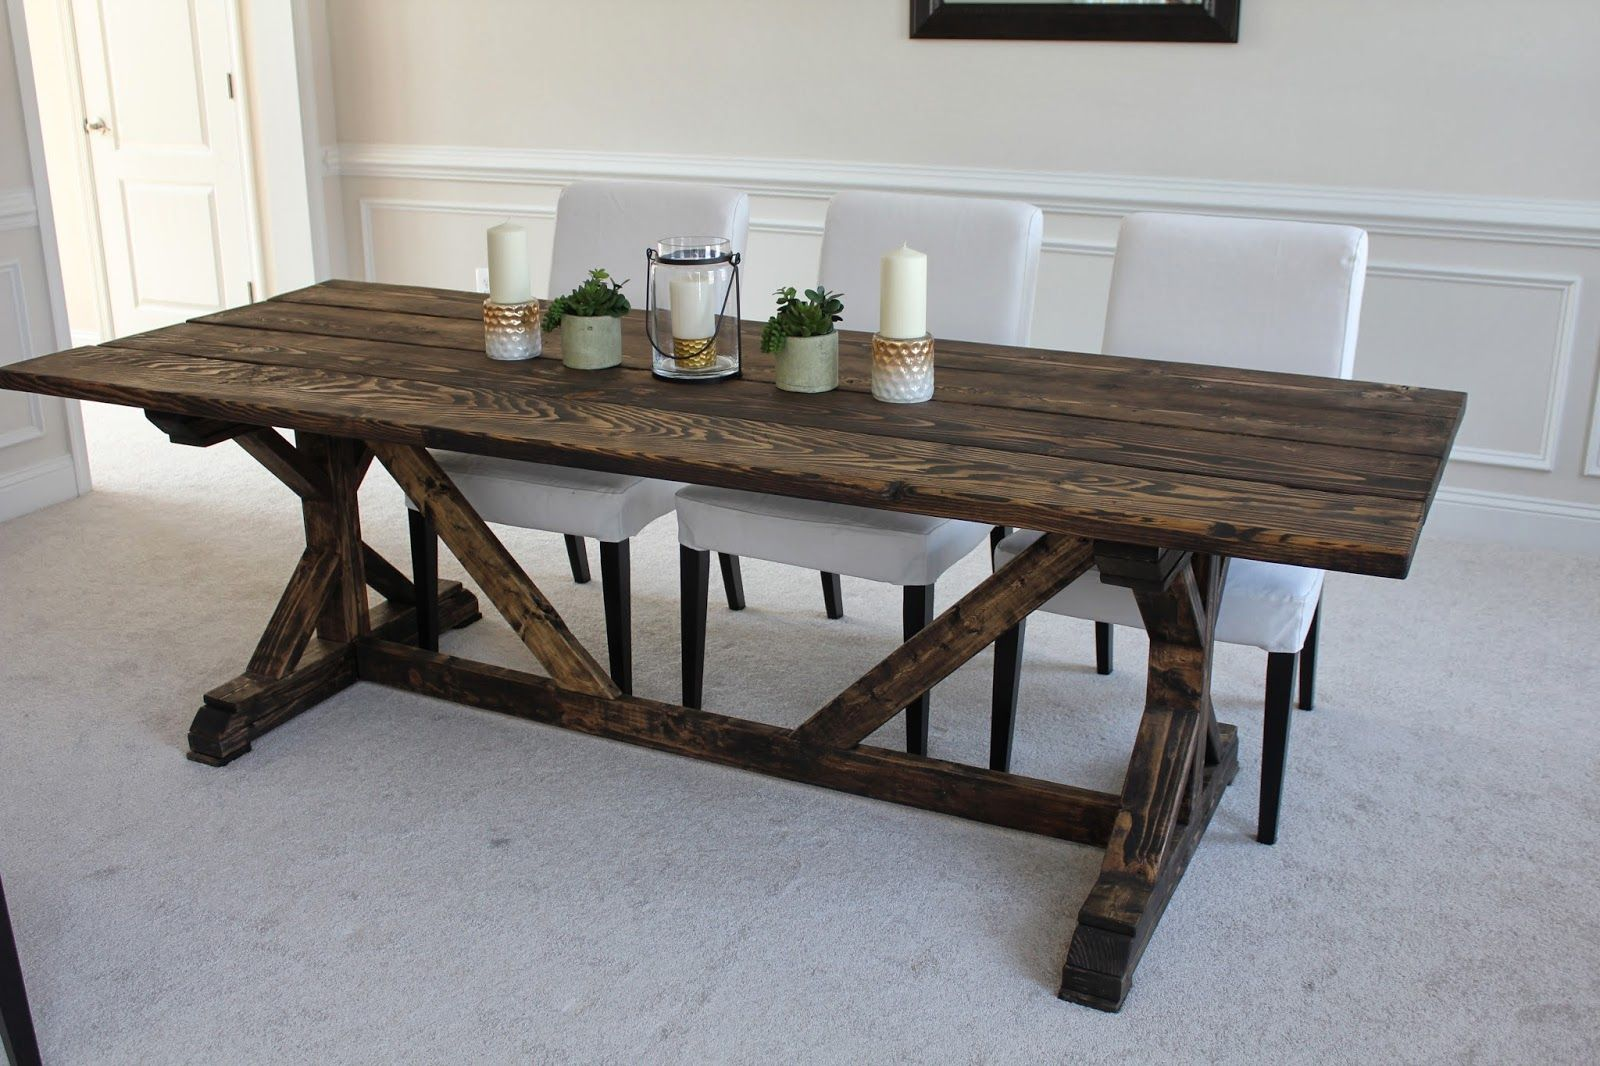 40 Diy Farmhouse Table Plans The Best Outdoor Seating & Dining Extraordinary Building A Dining Room Table Inspiration Design